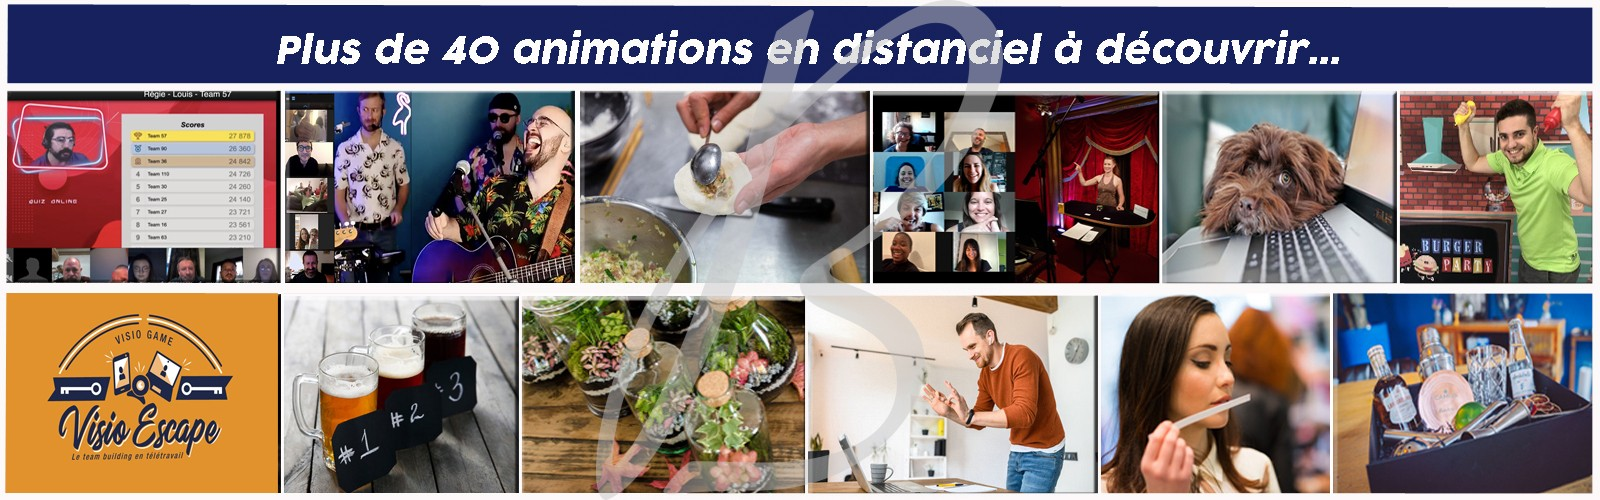 team-building-animations-artistes